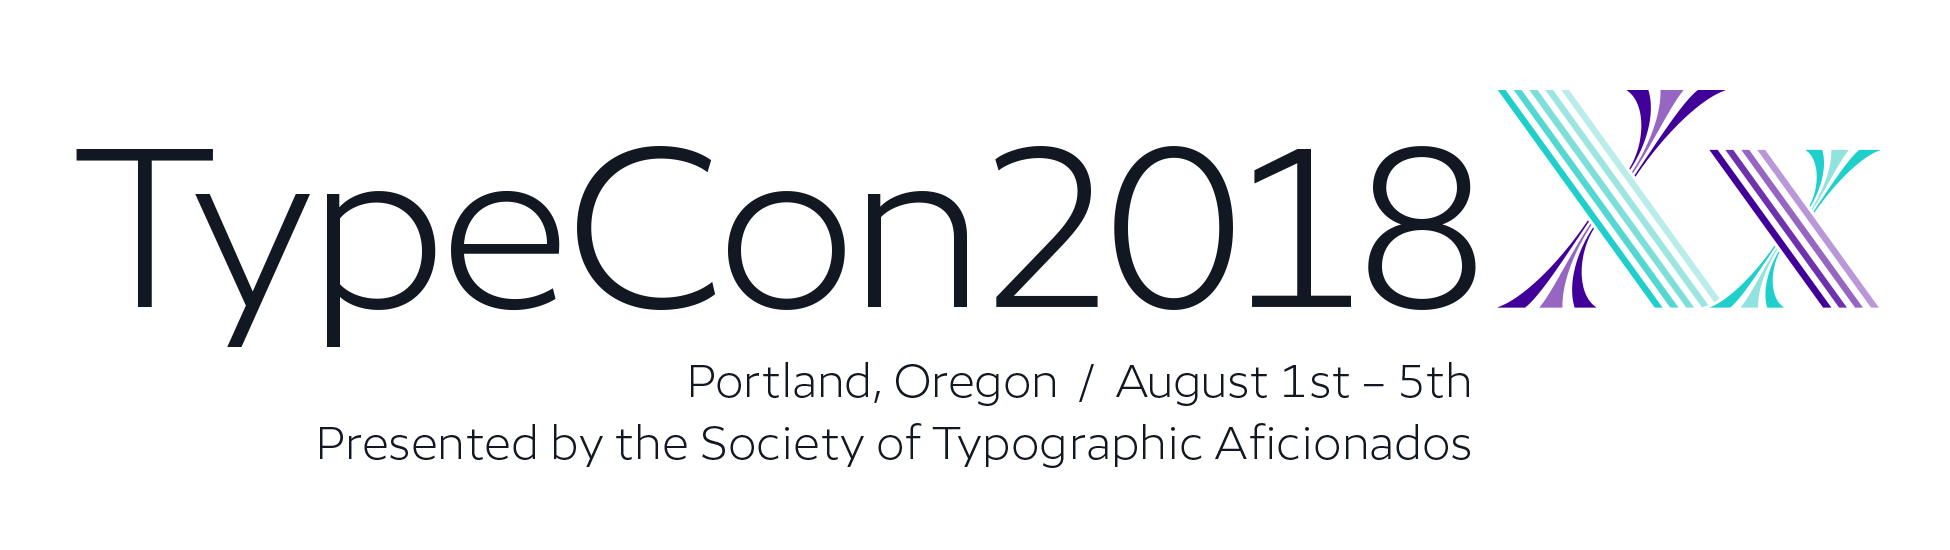 TypeConPresented by the Society of Typographic Aficionados